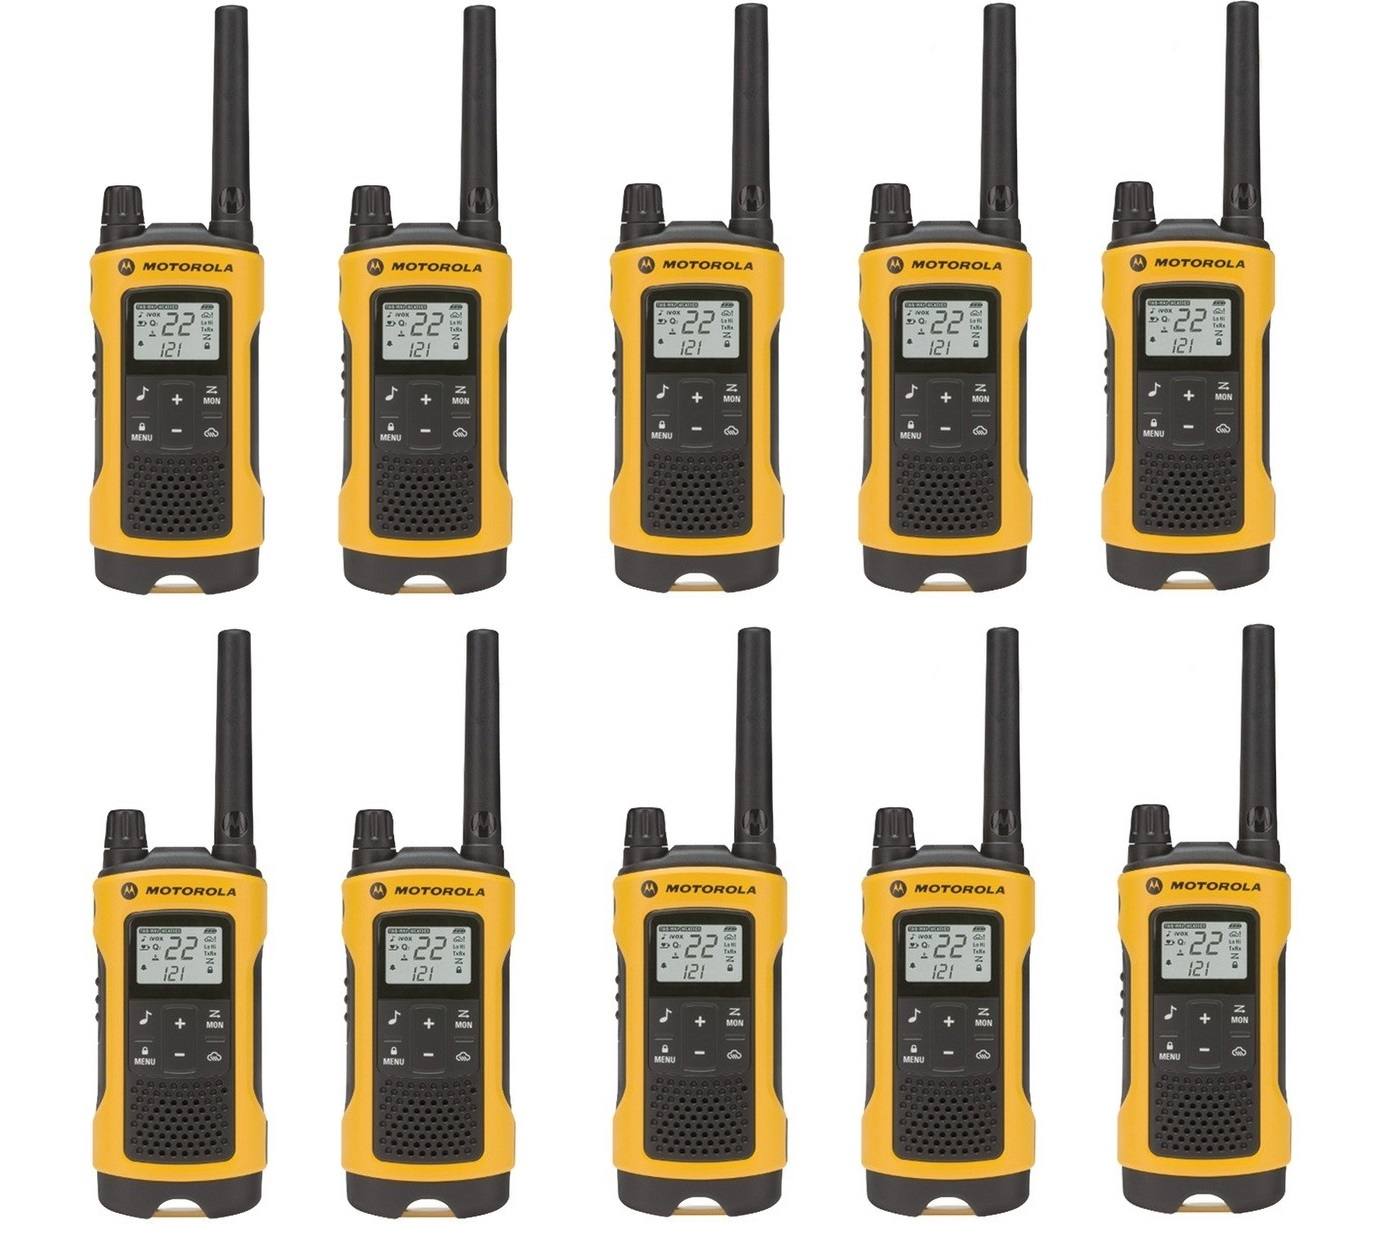 Motorola Talkabout T400 Walkie Talkie Set 35 Mile Two Way